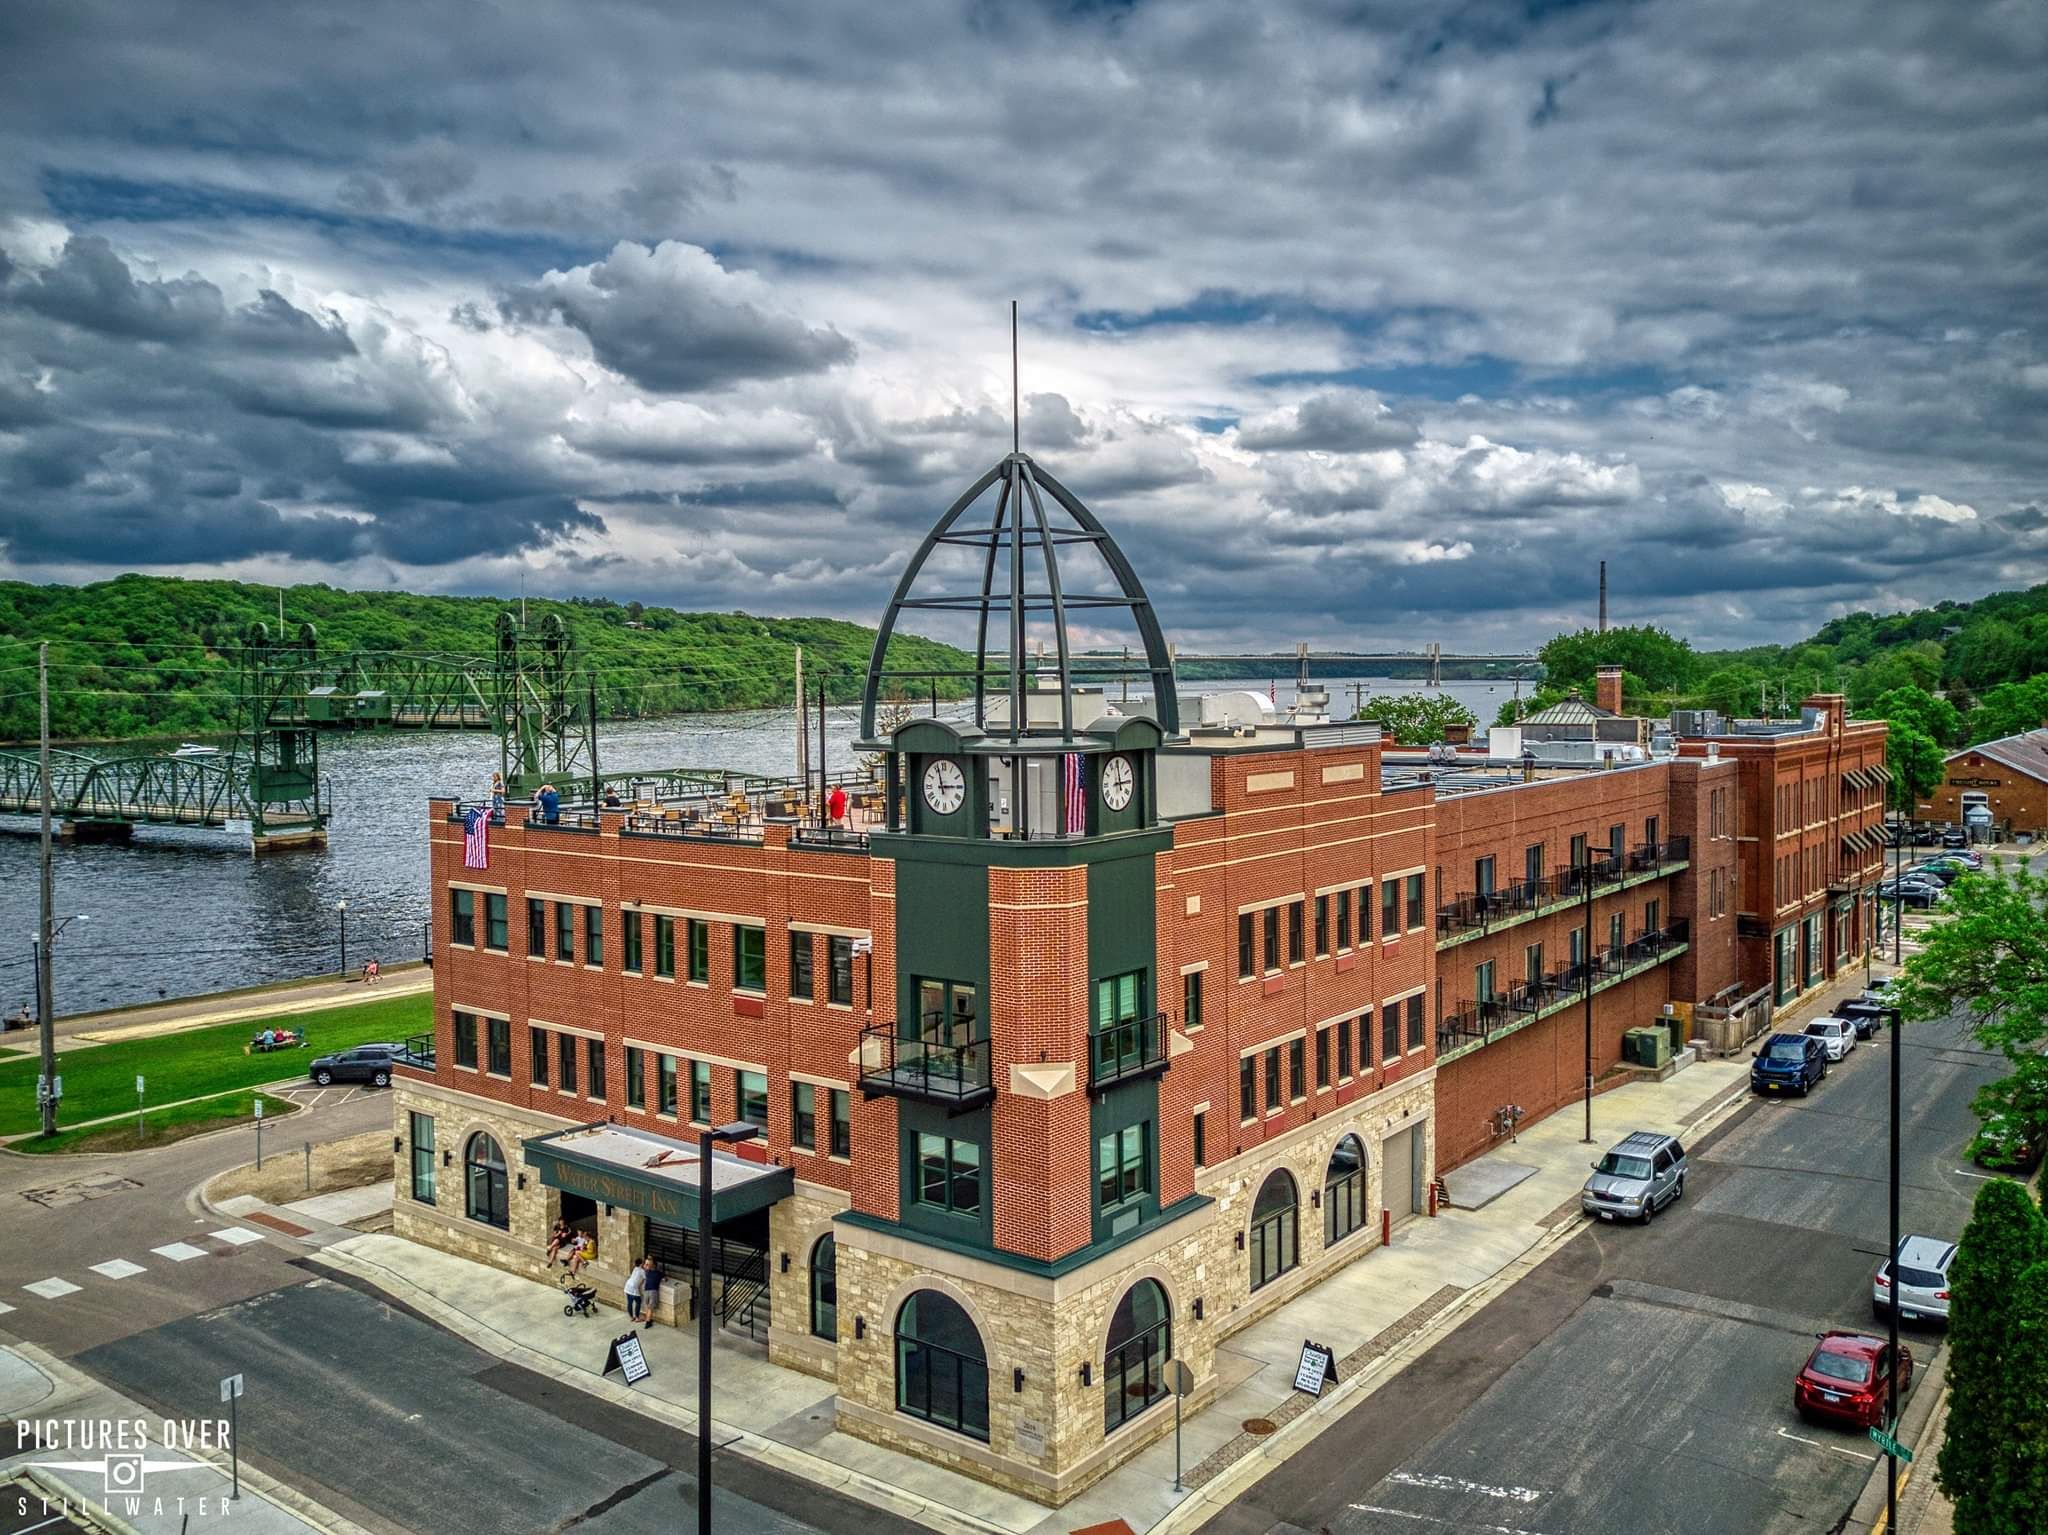 Our Stillwater MN Hotel offers unmatched river views.